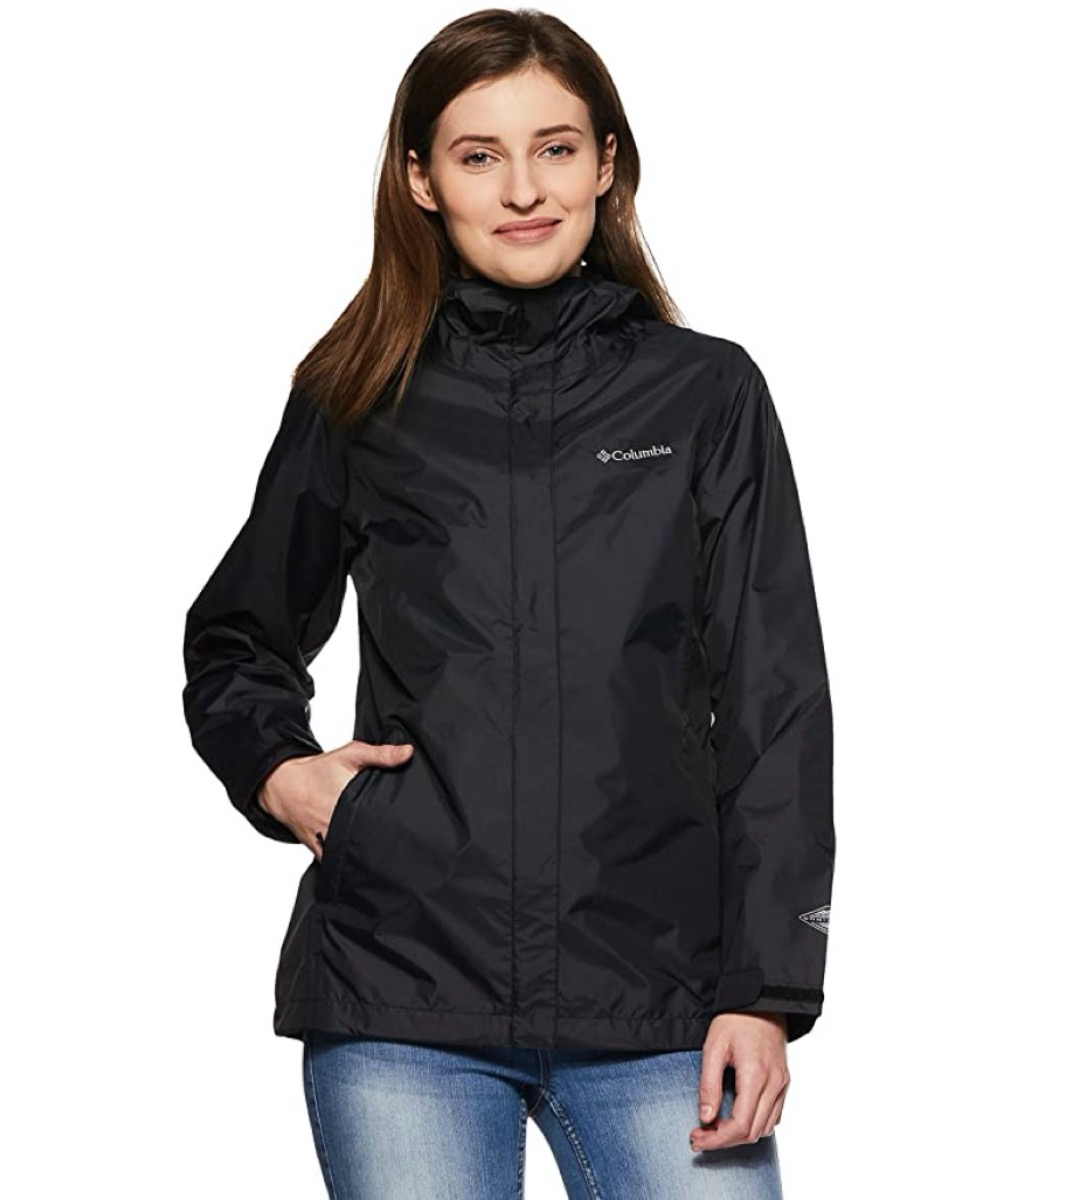 young white woman in black rain jacket